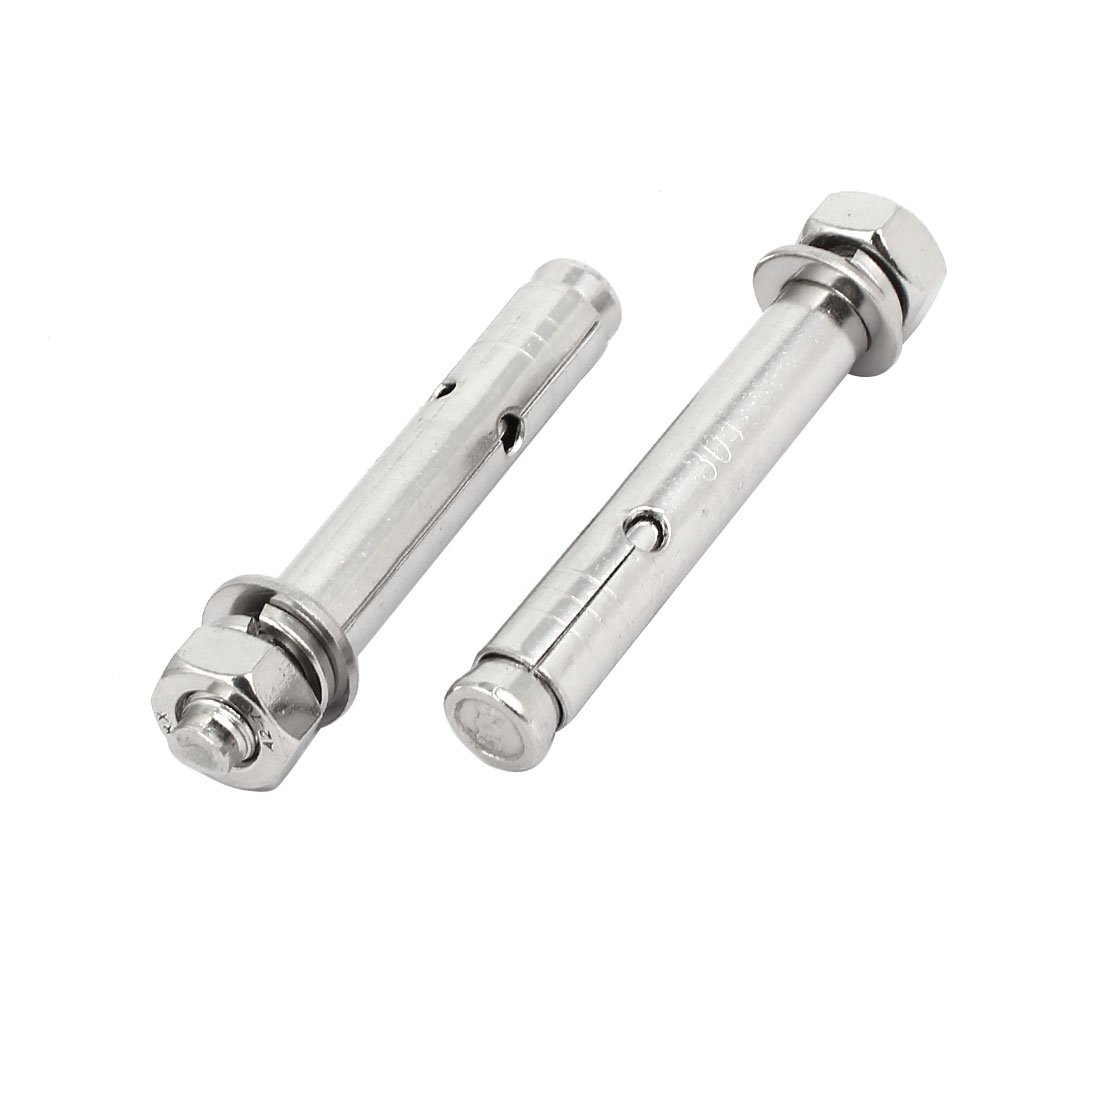 uxcell M10x90mm 304 Stainless Steel Air Condition Fitting Sleeve Anchor Expansion Bolt 5pcs by uxcell (Image #3)